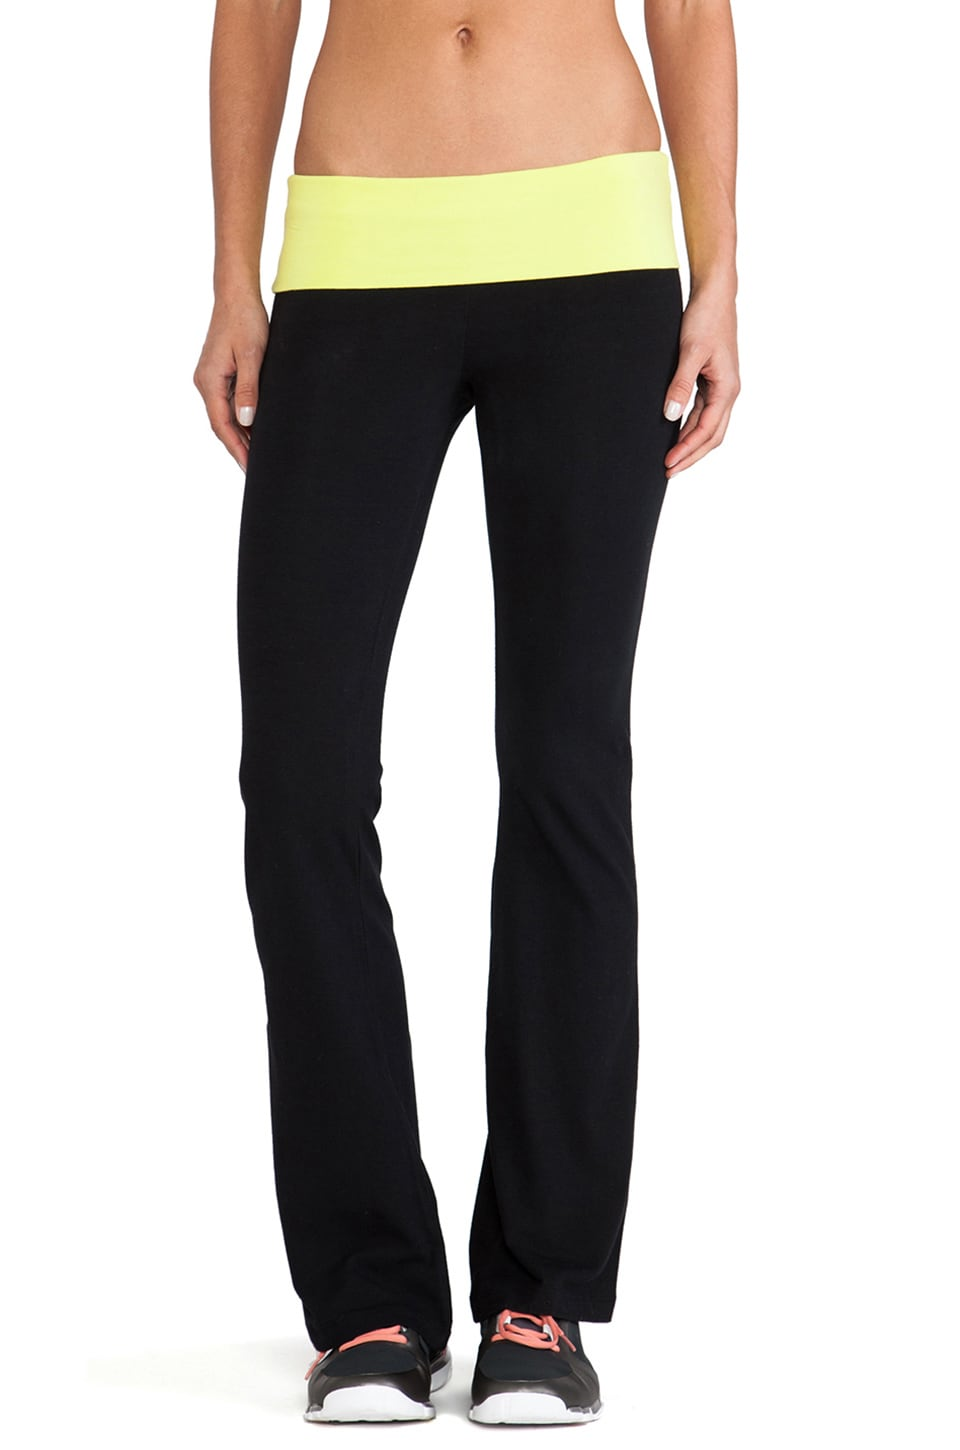 SOLOW Fold Over Boot Cut Pant in Black & Citron